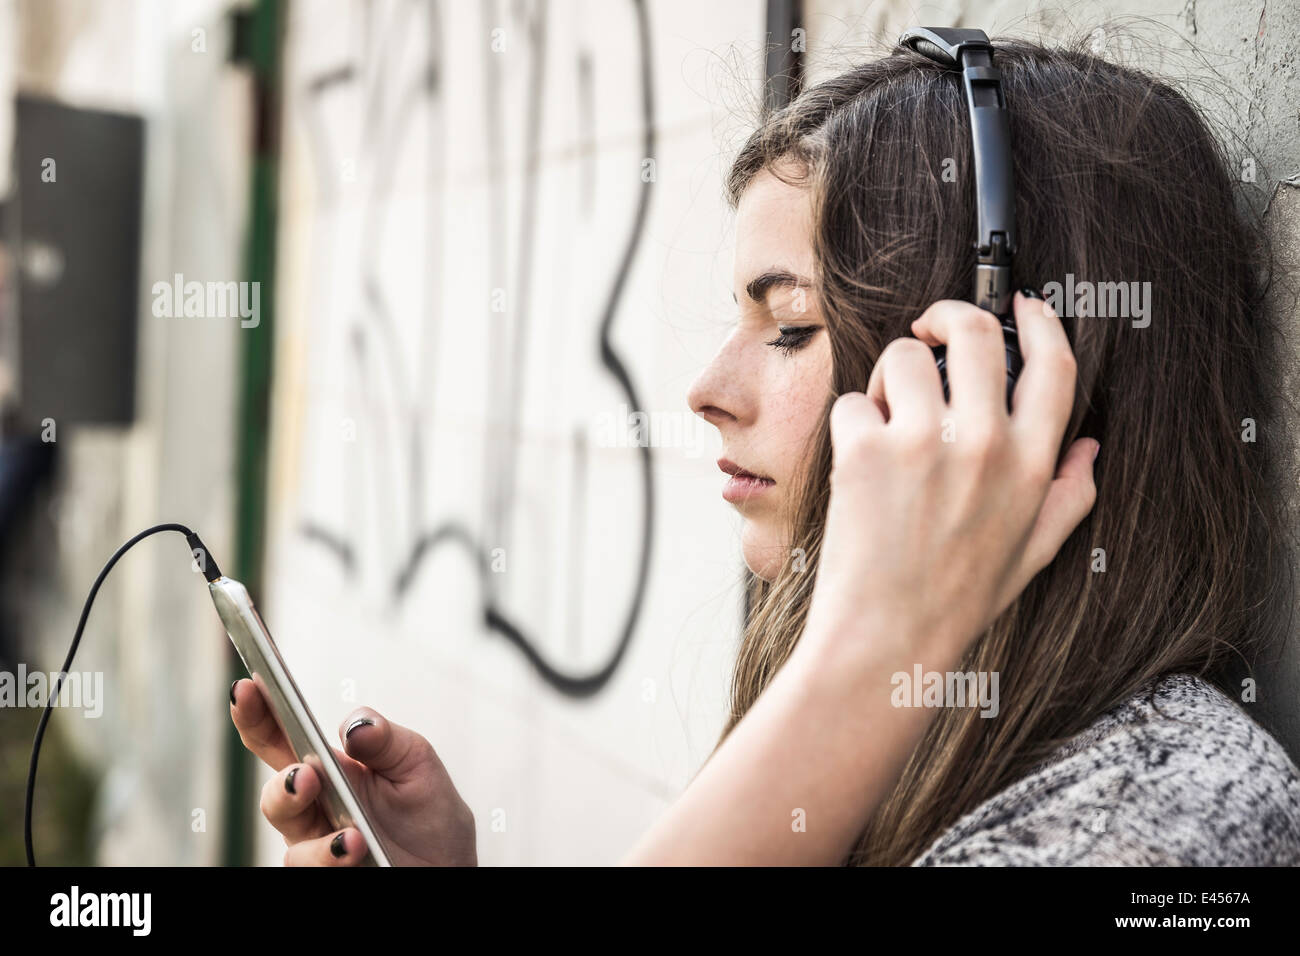 Girl listening to music on smartphone - Stock Image